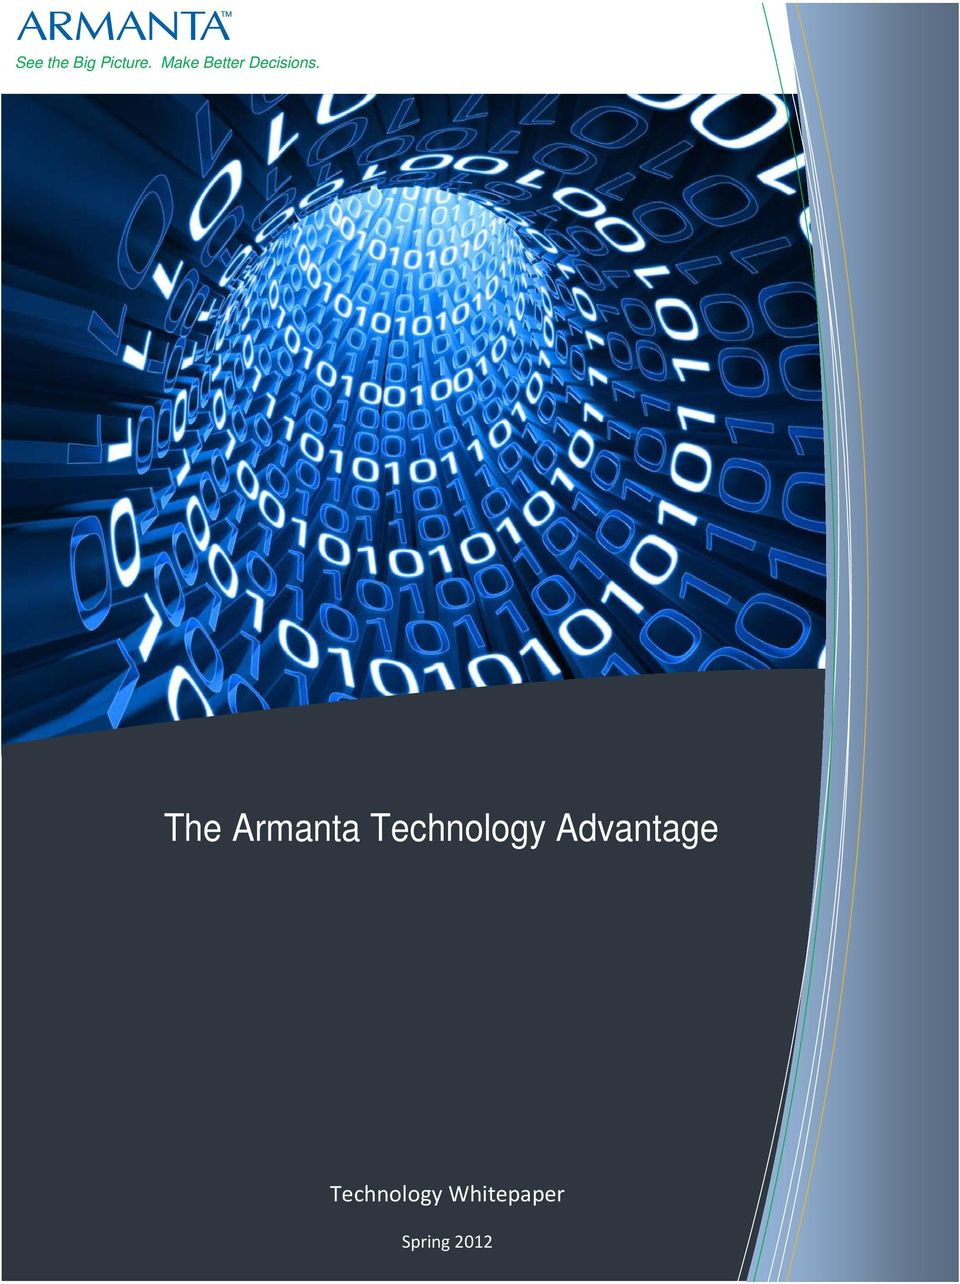 The Armanta Technology